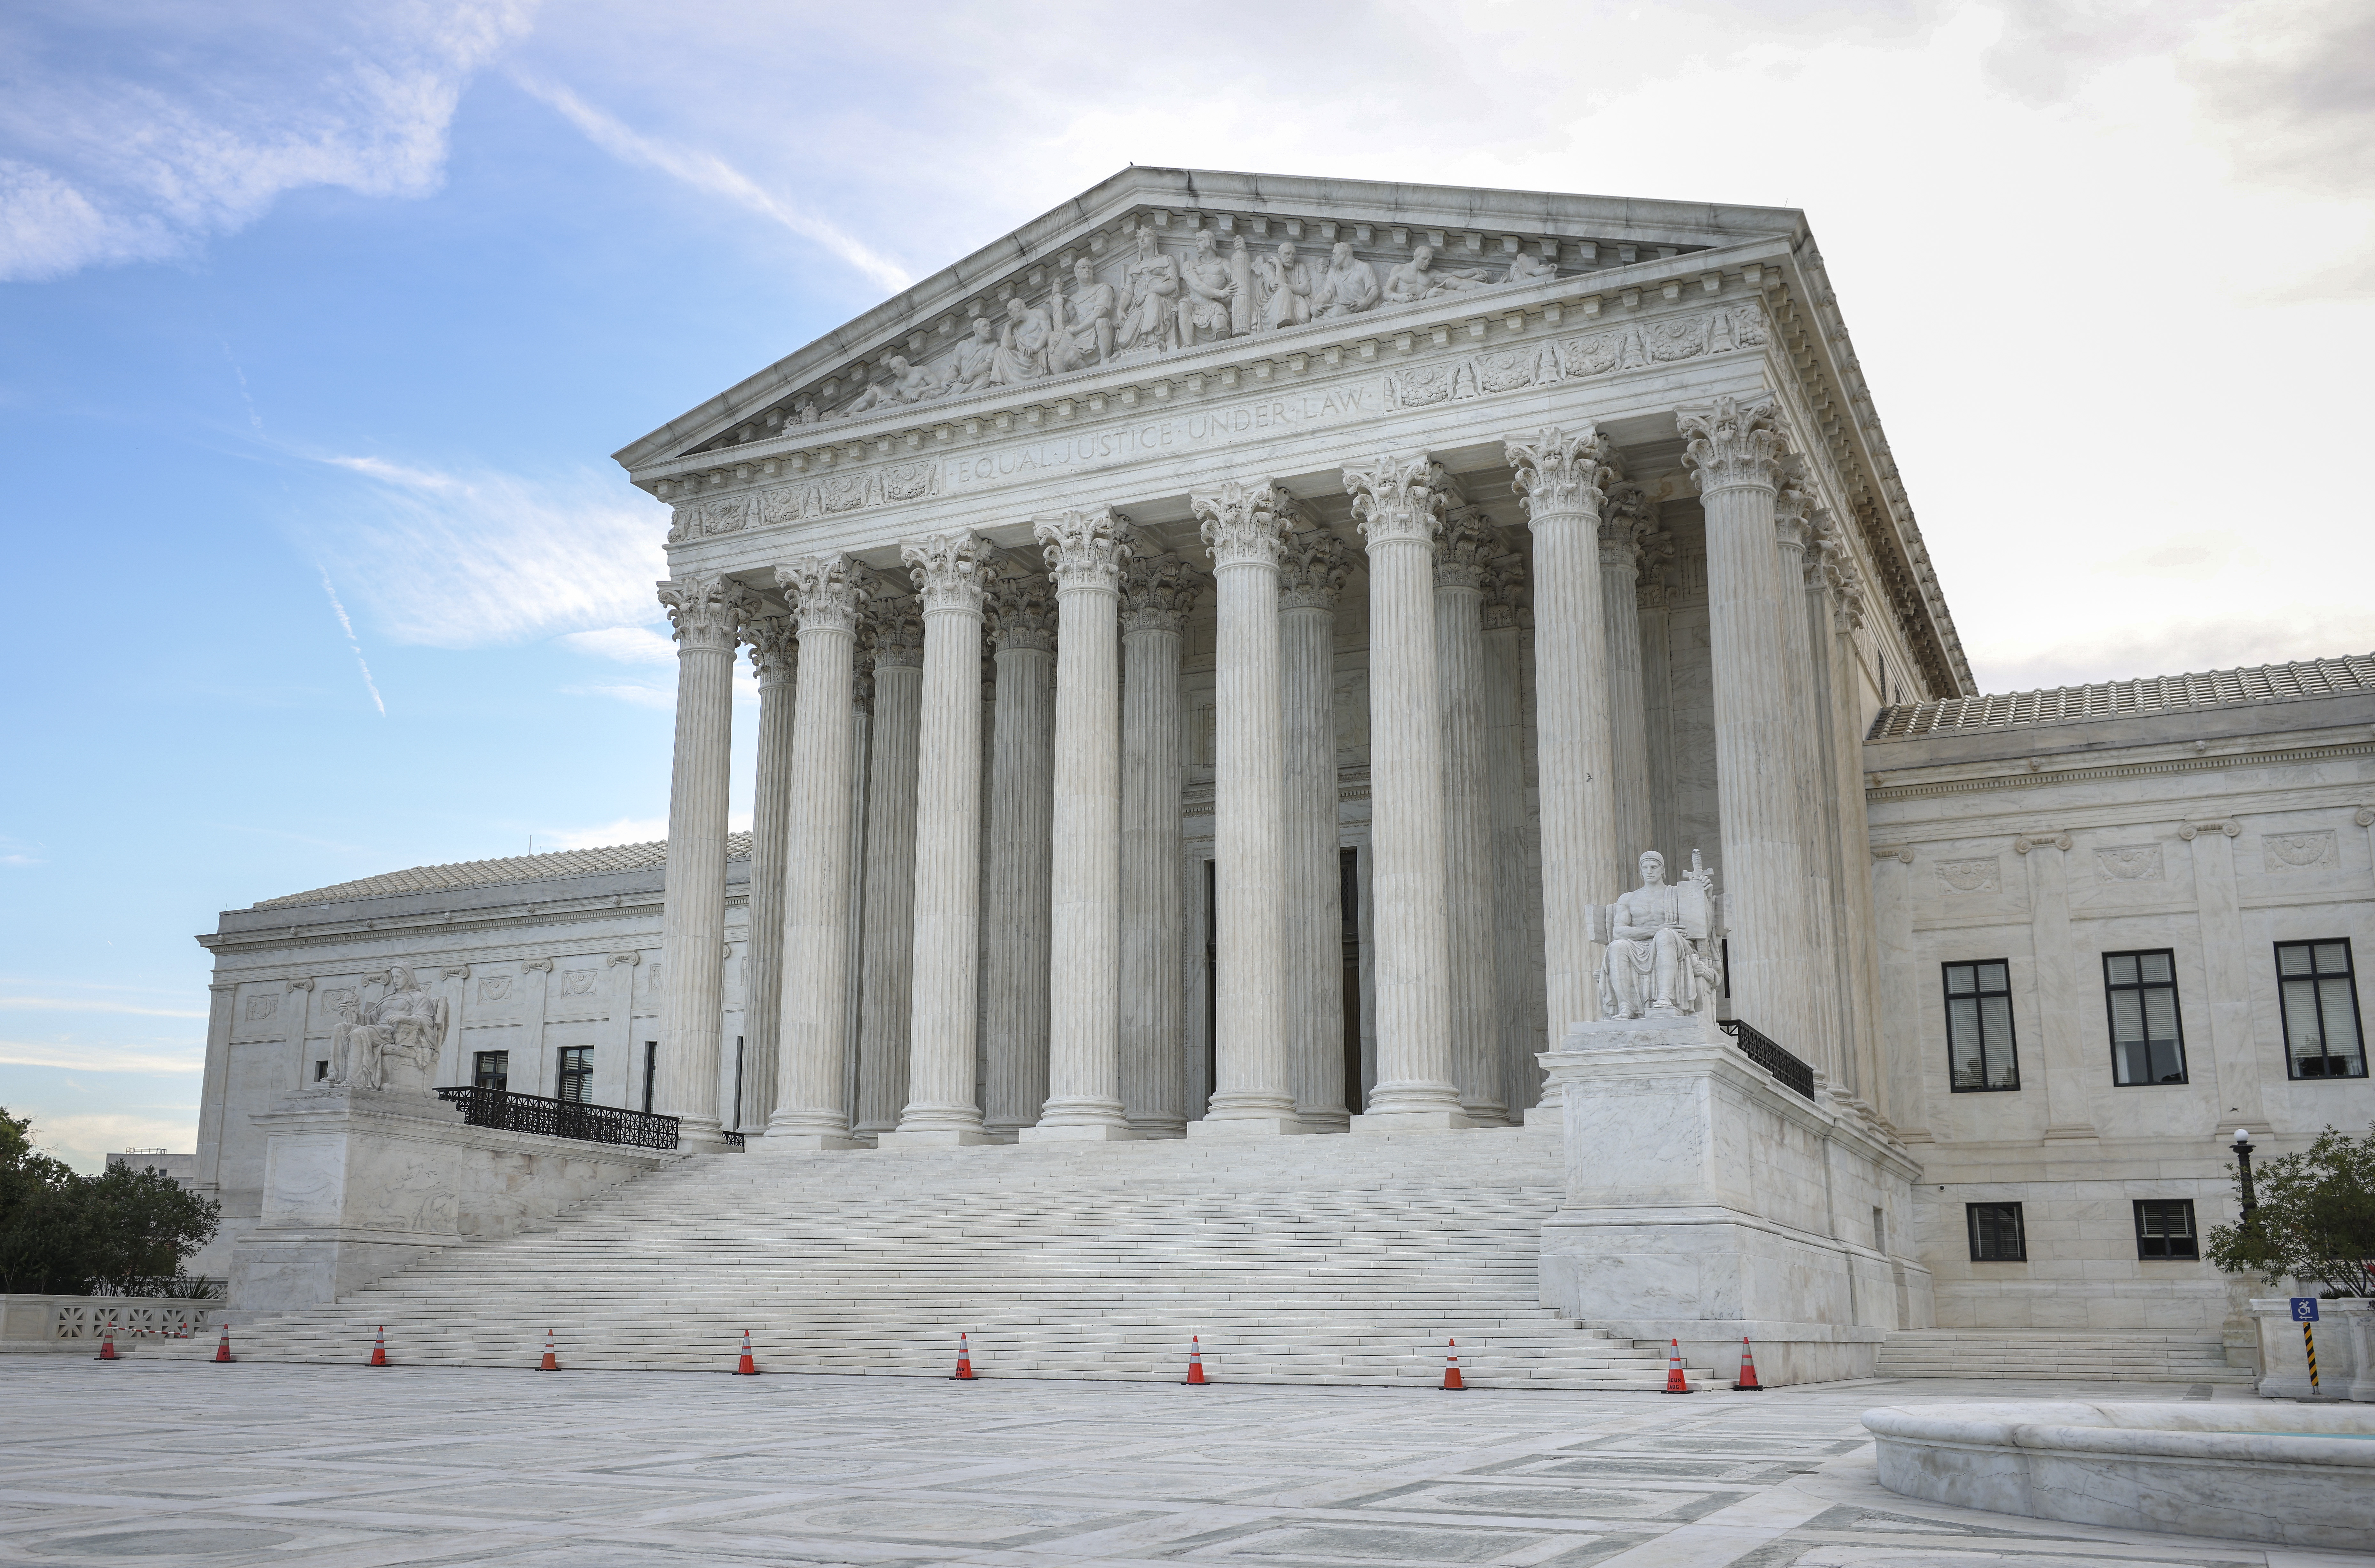 The U.S. Supreme Court is seen on October 05, 2021 in Washington, DC. (Photo by Kevin Dietsch/Getty Images)